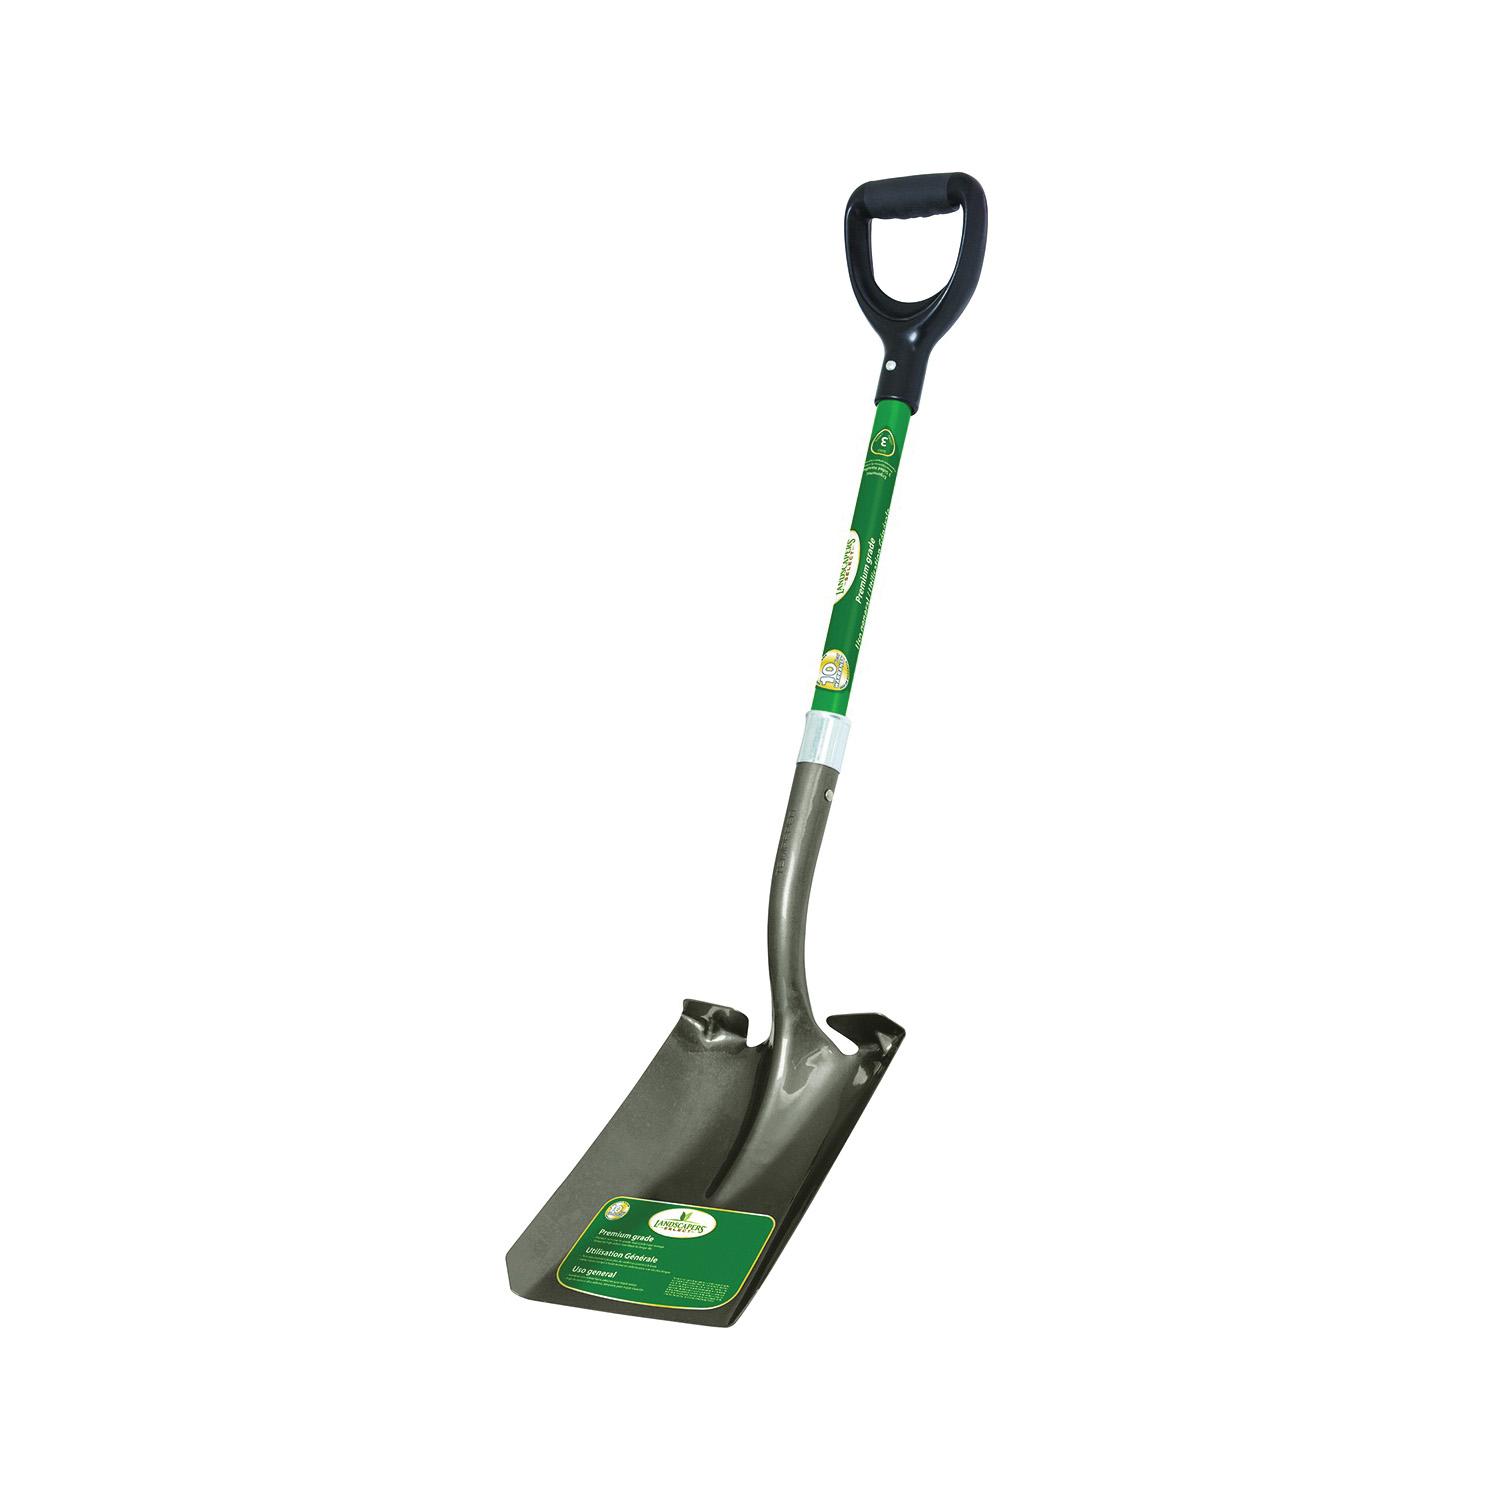 Picture of Landscapers Select 34600 Transfer Shovel, Steel Blade, Fiberglass Handle, D-Shaped Handle, 30 in L Handle